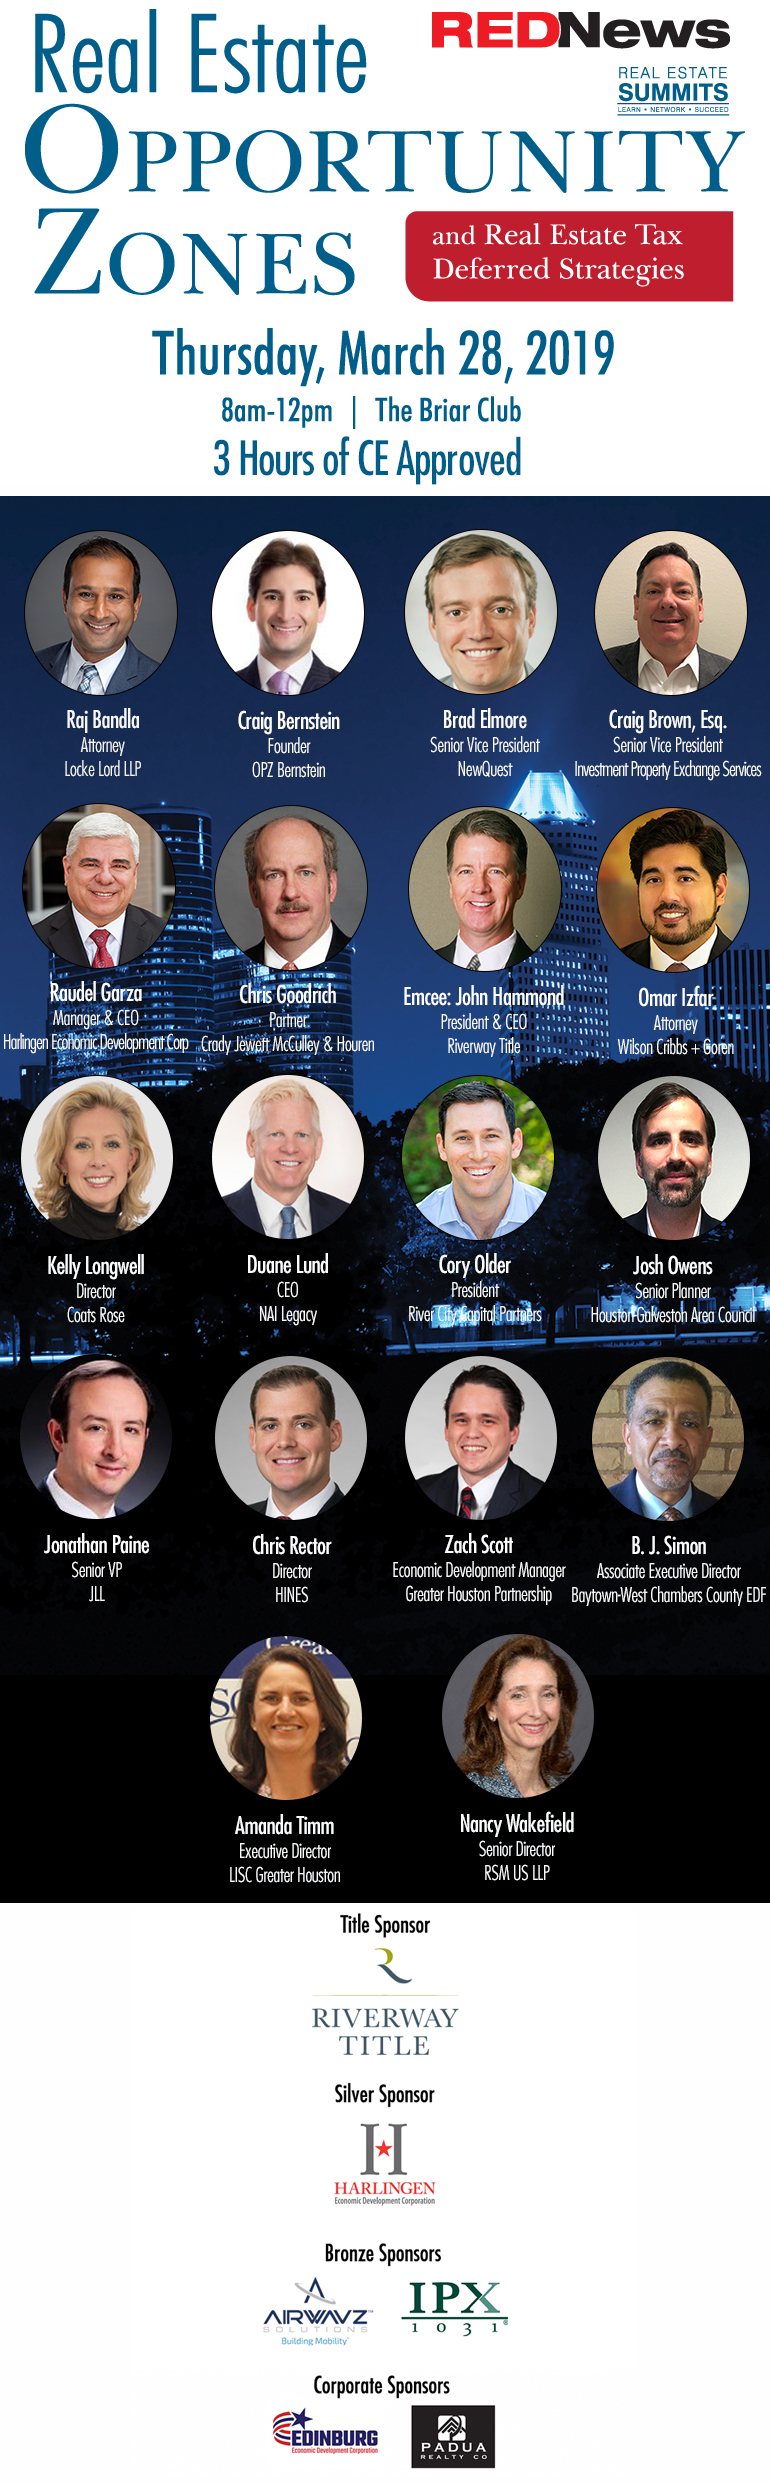 Texas Real Estate Opportunity Zones Summit